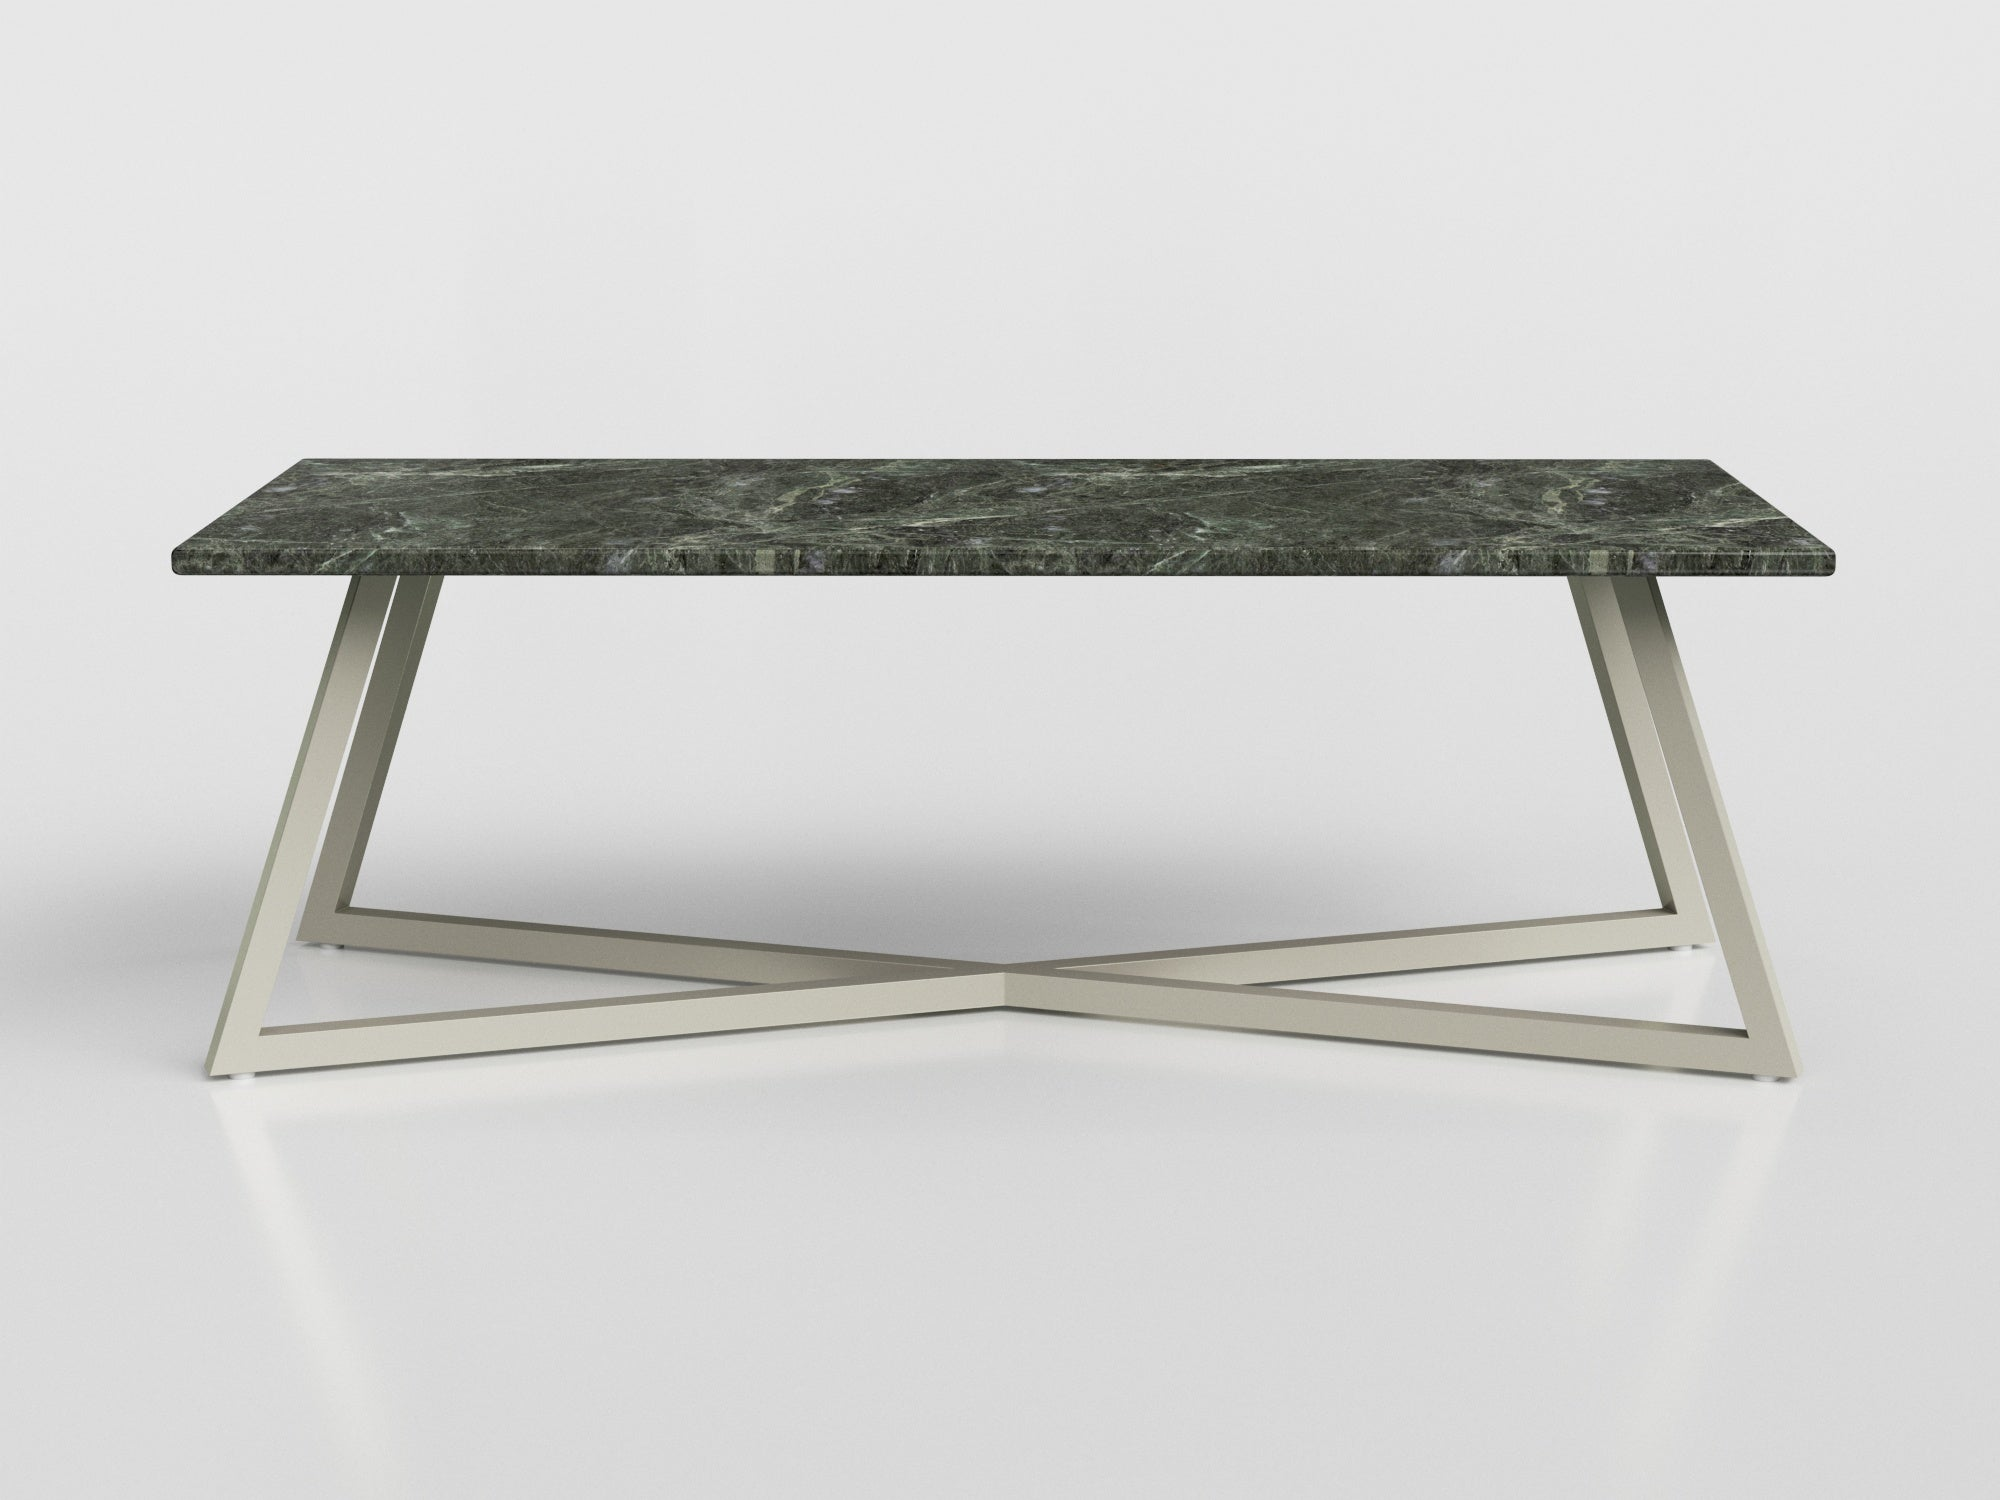 6143 - Piramide Rectangular Table Full